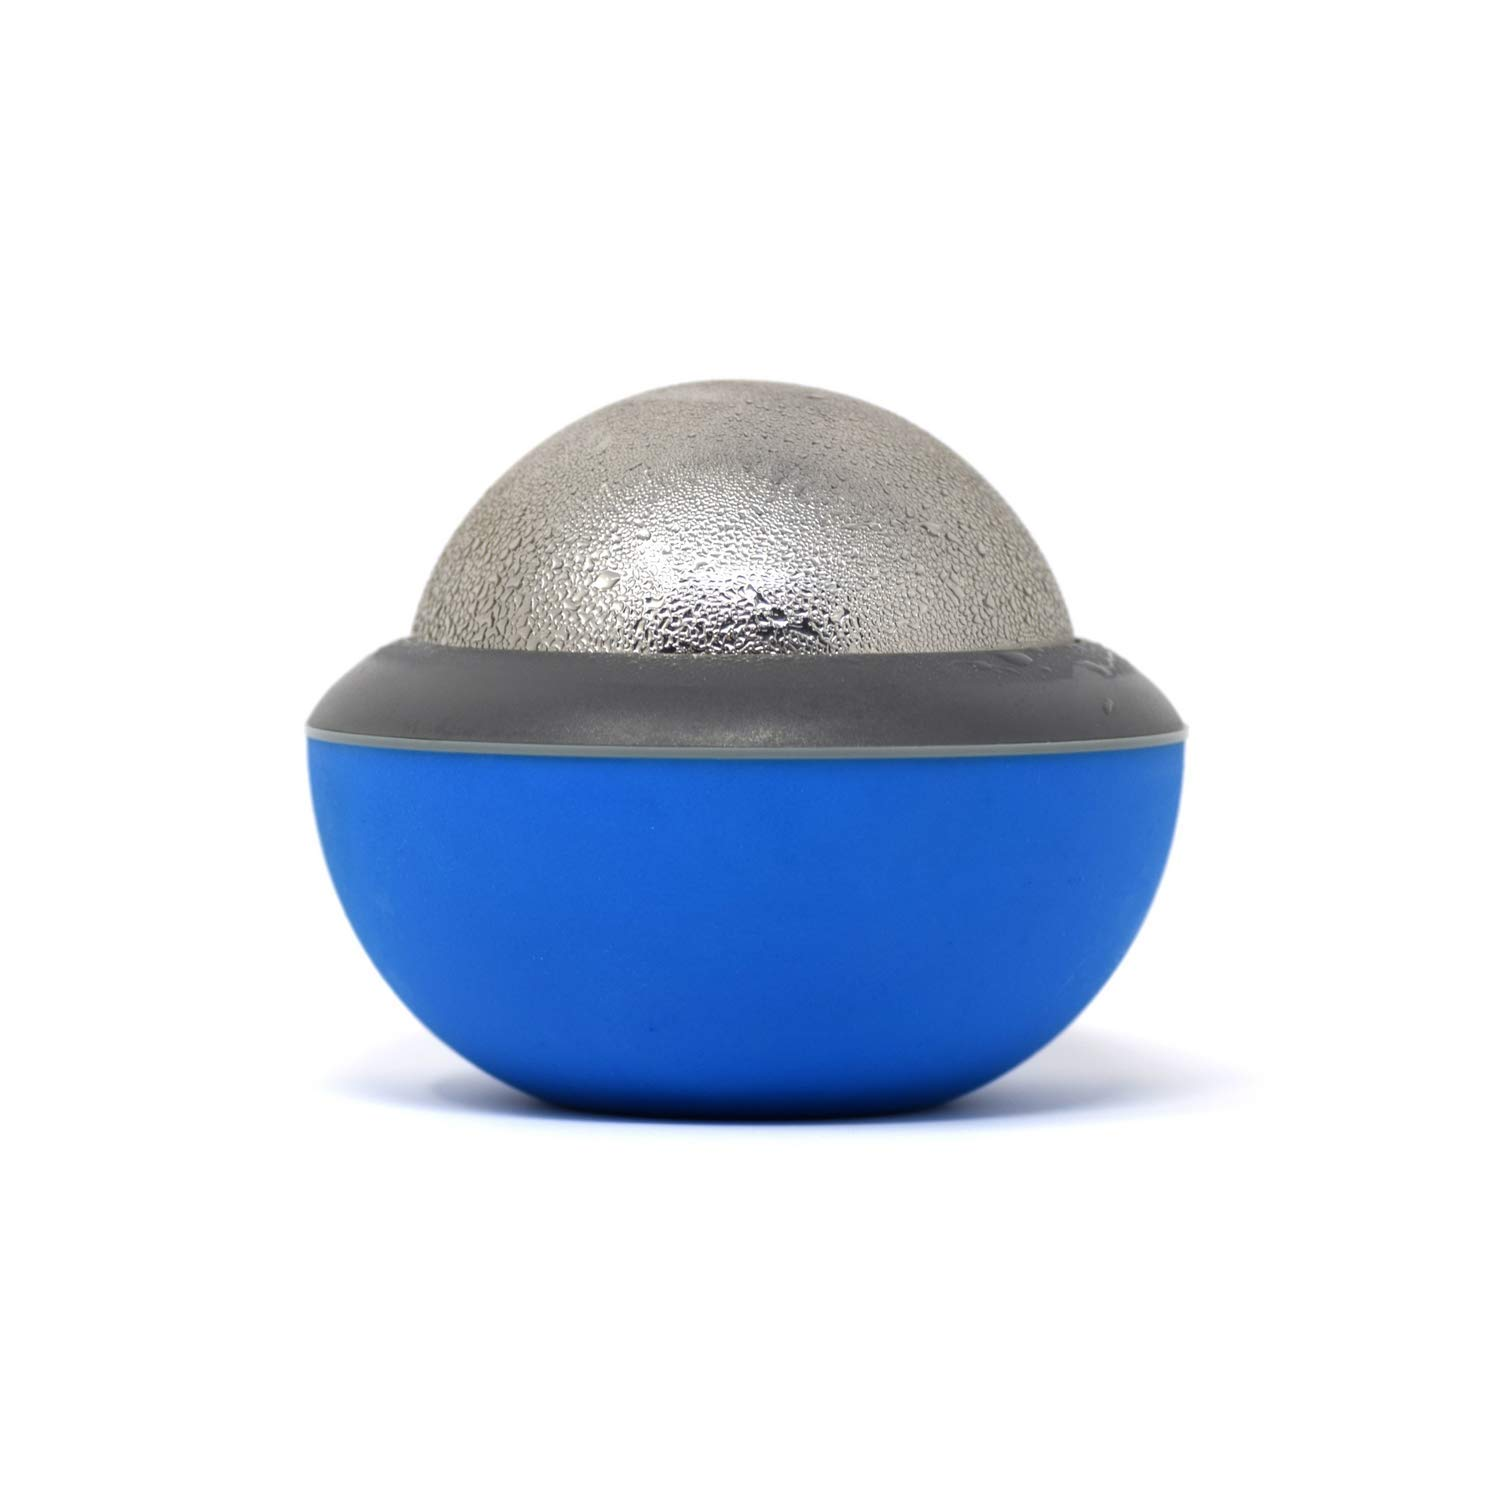 Cold Massage Roller - B33 Cryotherapy Massager by EKRIN ATHLETICS - 6 Hrs Cold Relief - Removable Massage Ball - Great for Recovery, Inflammation Control, Myofascial Release, Deep Tissue Massage by Ekrin Athletics